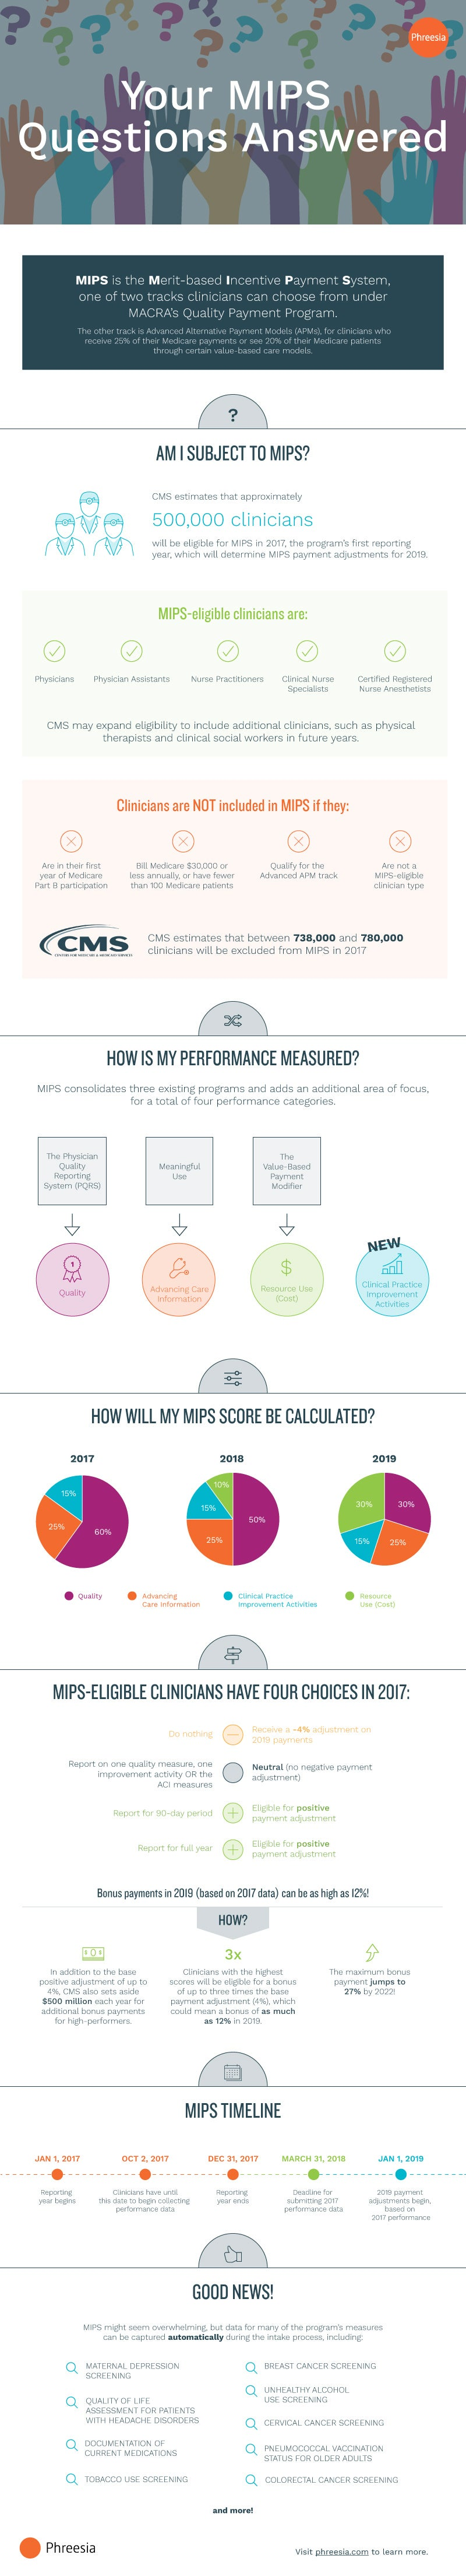 Infographic describing MACRA's Quality Payment Program (MIPS)